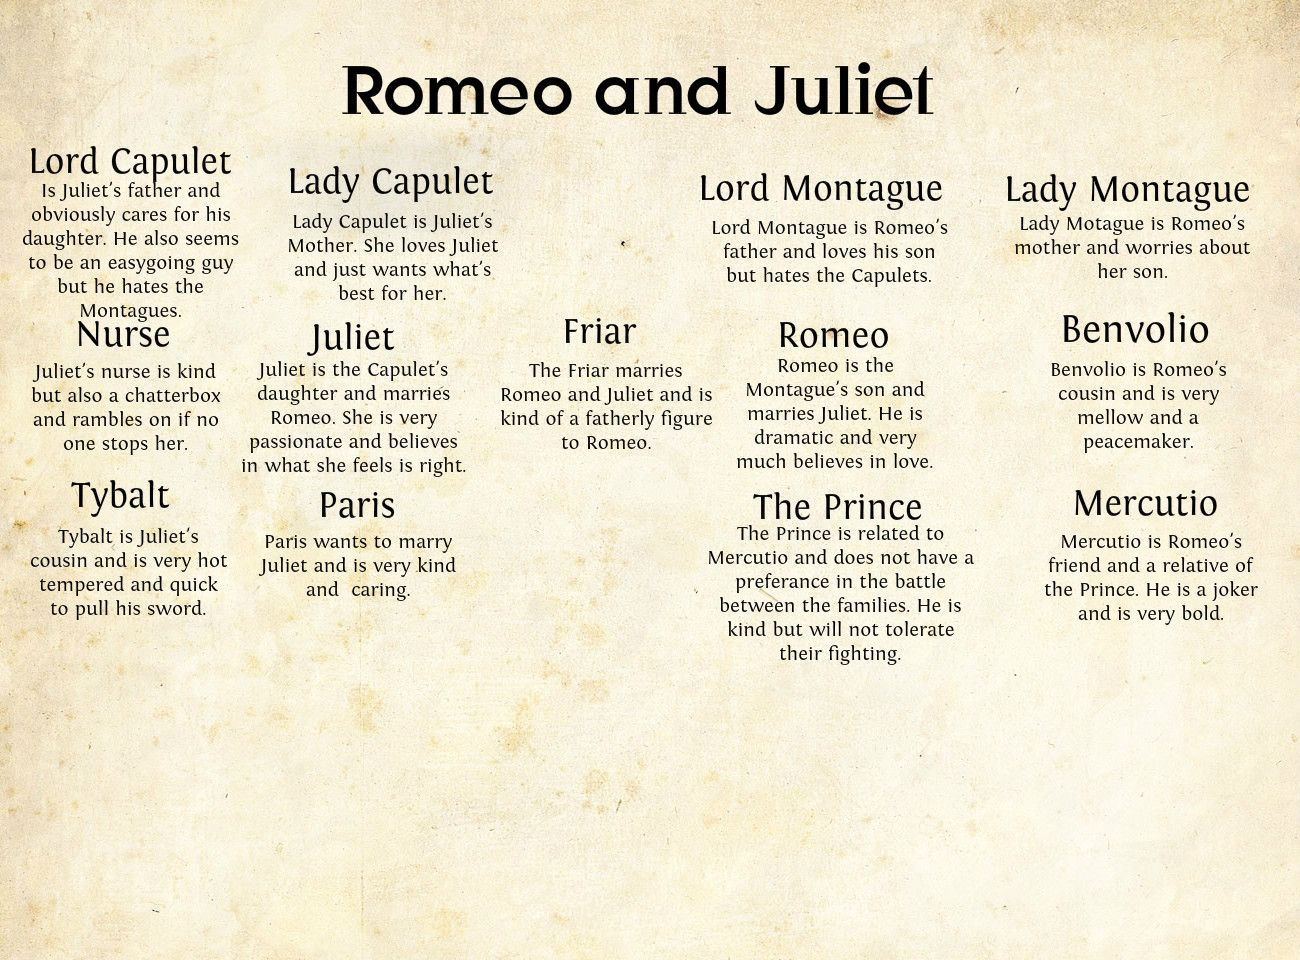 an analysis of family life in romeo and juliet Setting the scene the fight which breaks out between the capulets and montagues in act 3, scene 1 is central to the plot of romeo and juliet: its consequences shift the story from romantic comedy to tragedy in a few short lines the catalyst, mercutio, is ironically a member of neither family it is the day.